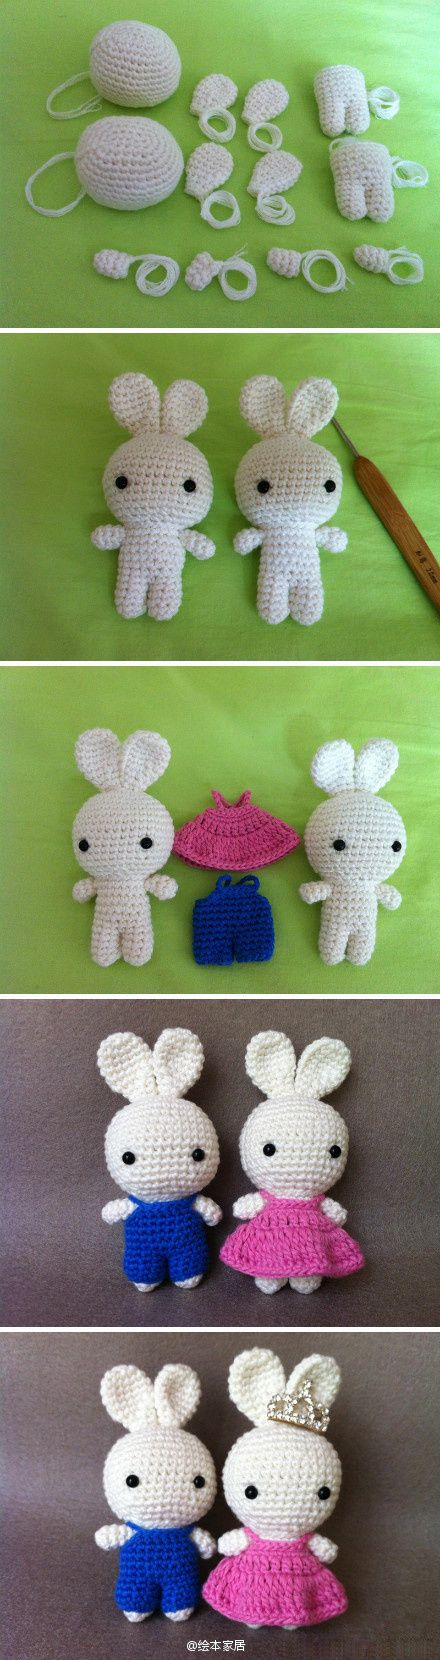 CROCHET - BUNNIES - tutorial